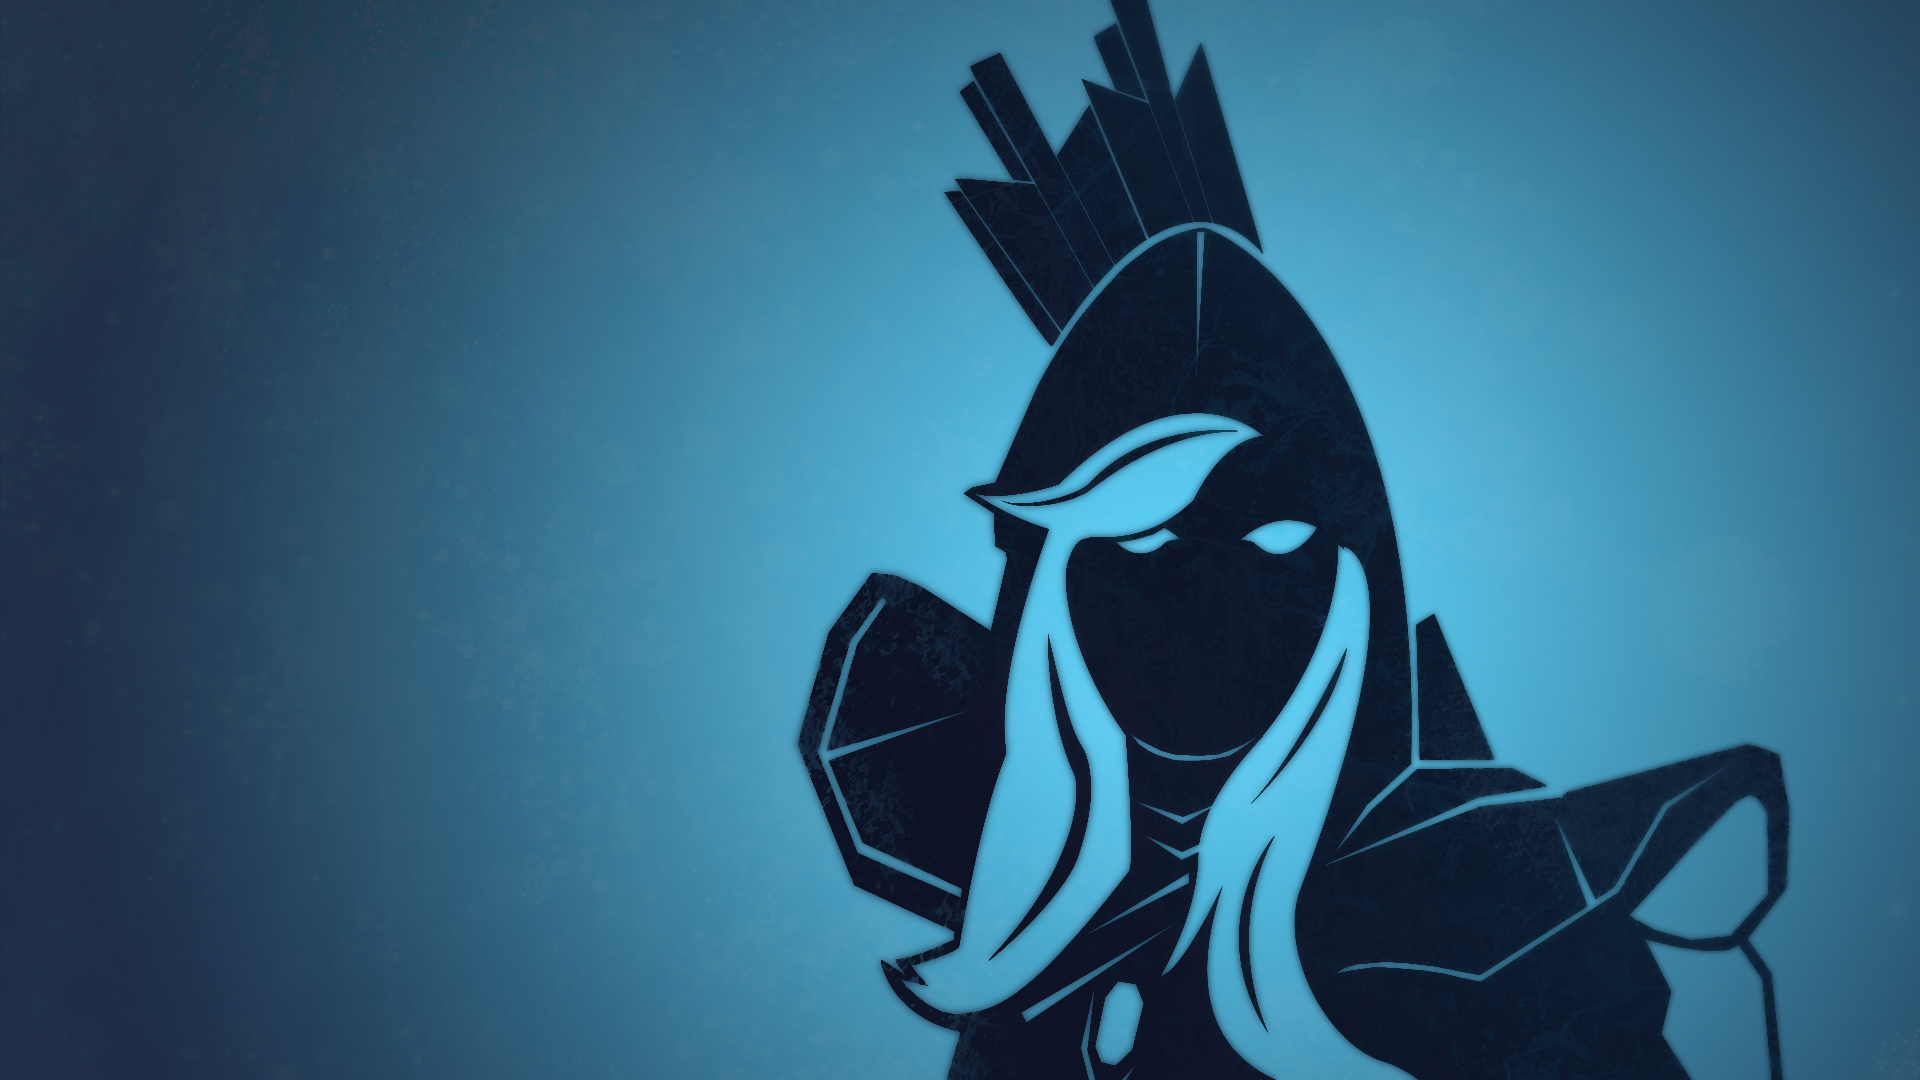 drow-ranger-vector-wallpaper